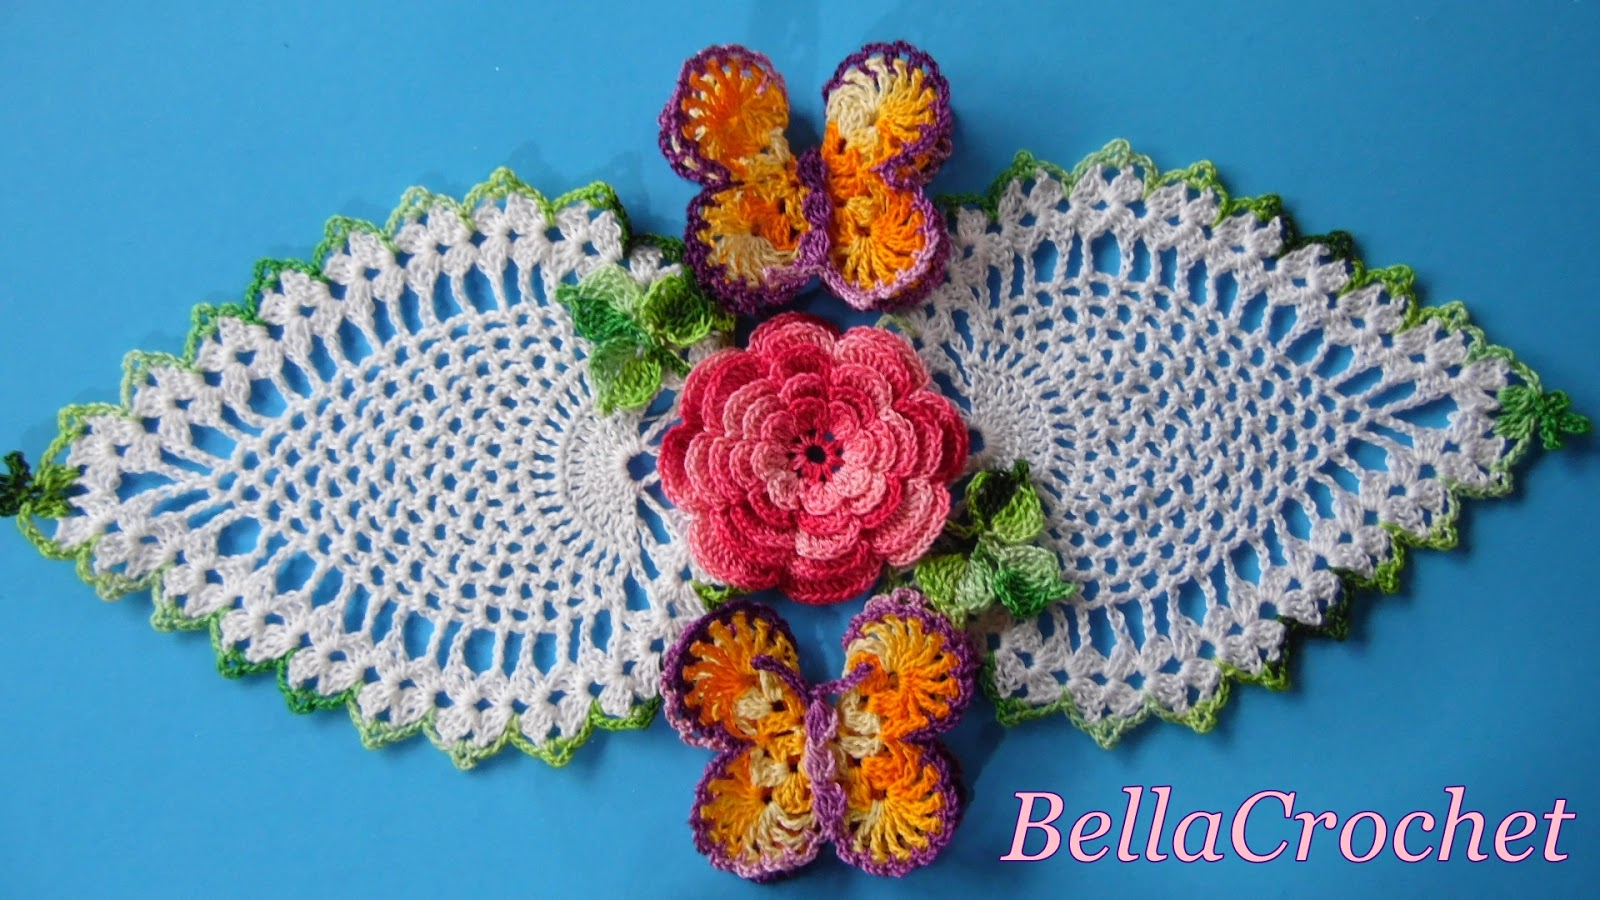 Bellacrochet carol a free crochet doily pattern for you 3 glue butterflies to doily as shown in photo glue leaf sprays to doily as shown allow to dry bankloansurffo Images